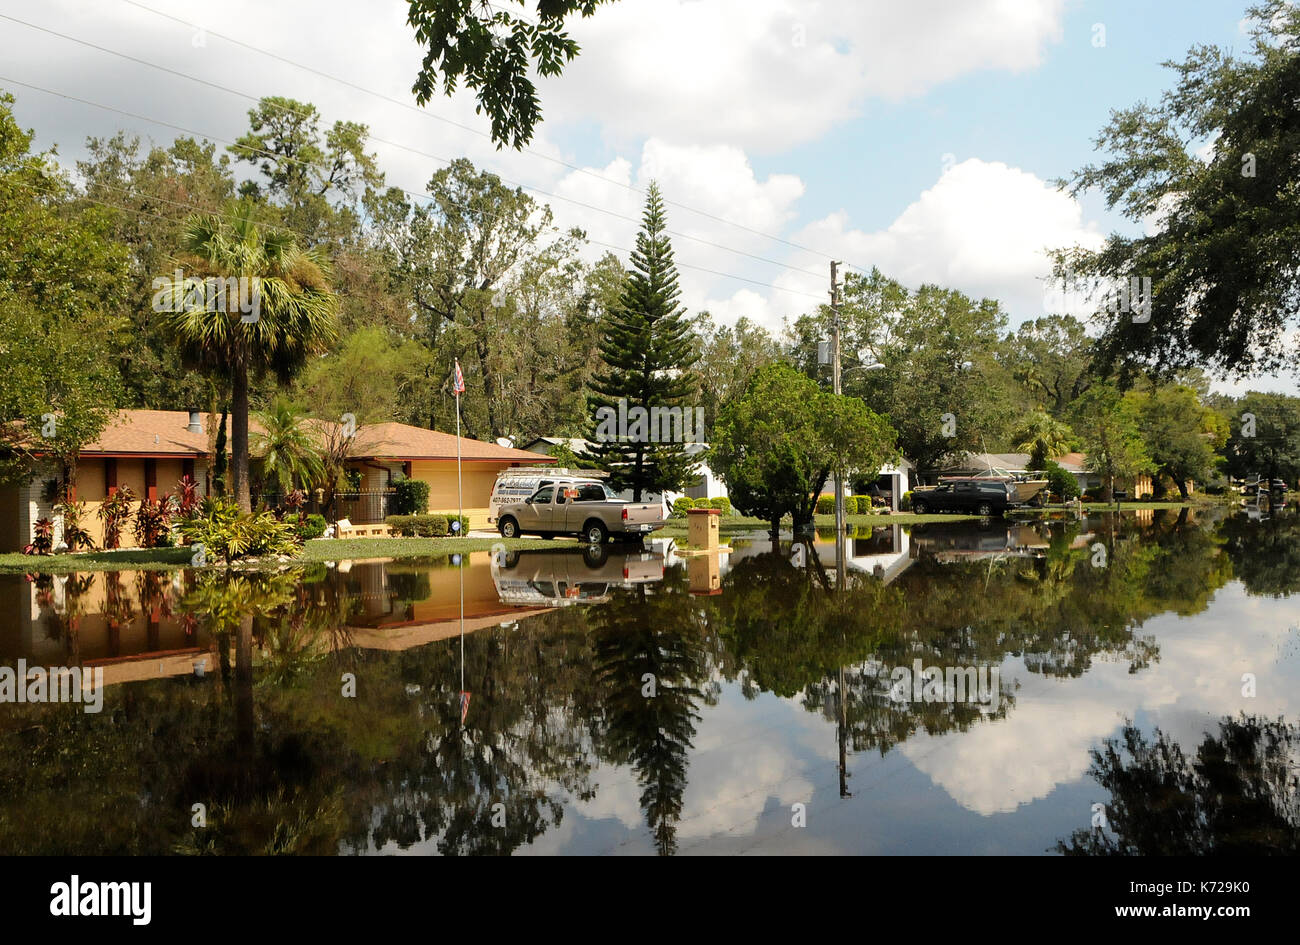 Altamonte Springs, United States. 14th Sep, 2017. September 14, 2017- Altamonte Springs, Florida, United States - Homes and trees are seen reflected in flood waters in the street in the Spring Oaks neighborhood of Altamonte Springs, Florida on September 14, 2017. Emergency workers used boats and trucks to rescue more than 50 residents on September 11, 2017 when water from the nearby Little Wekiva River swamped their homes in the wake of Hurricane Irma. Credit: Paul Hennessy/Alamy Live News - Stock Image